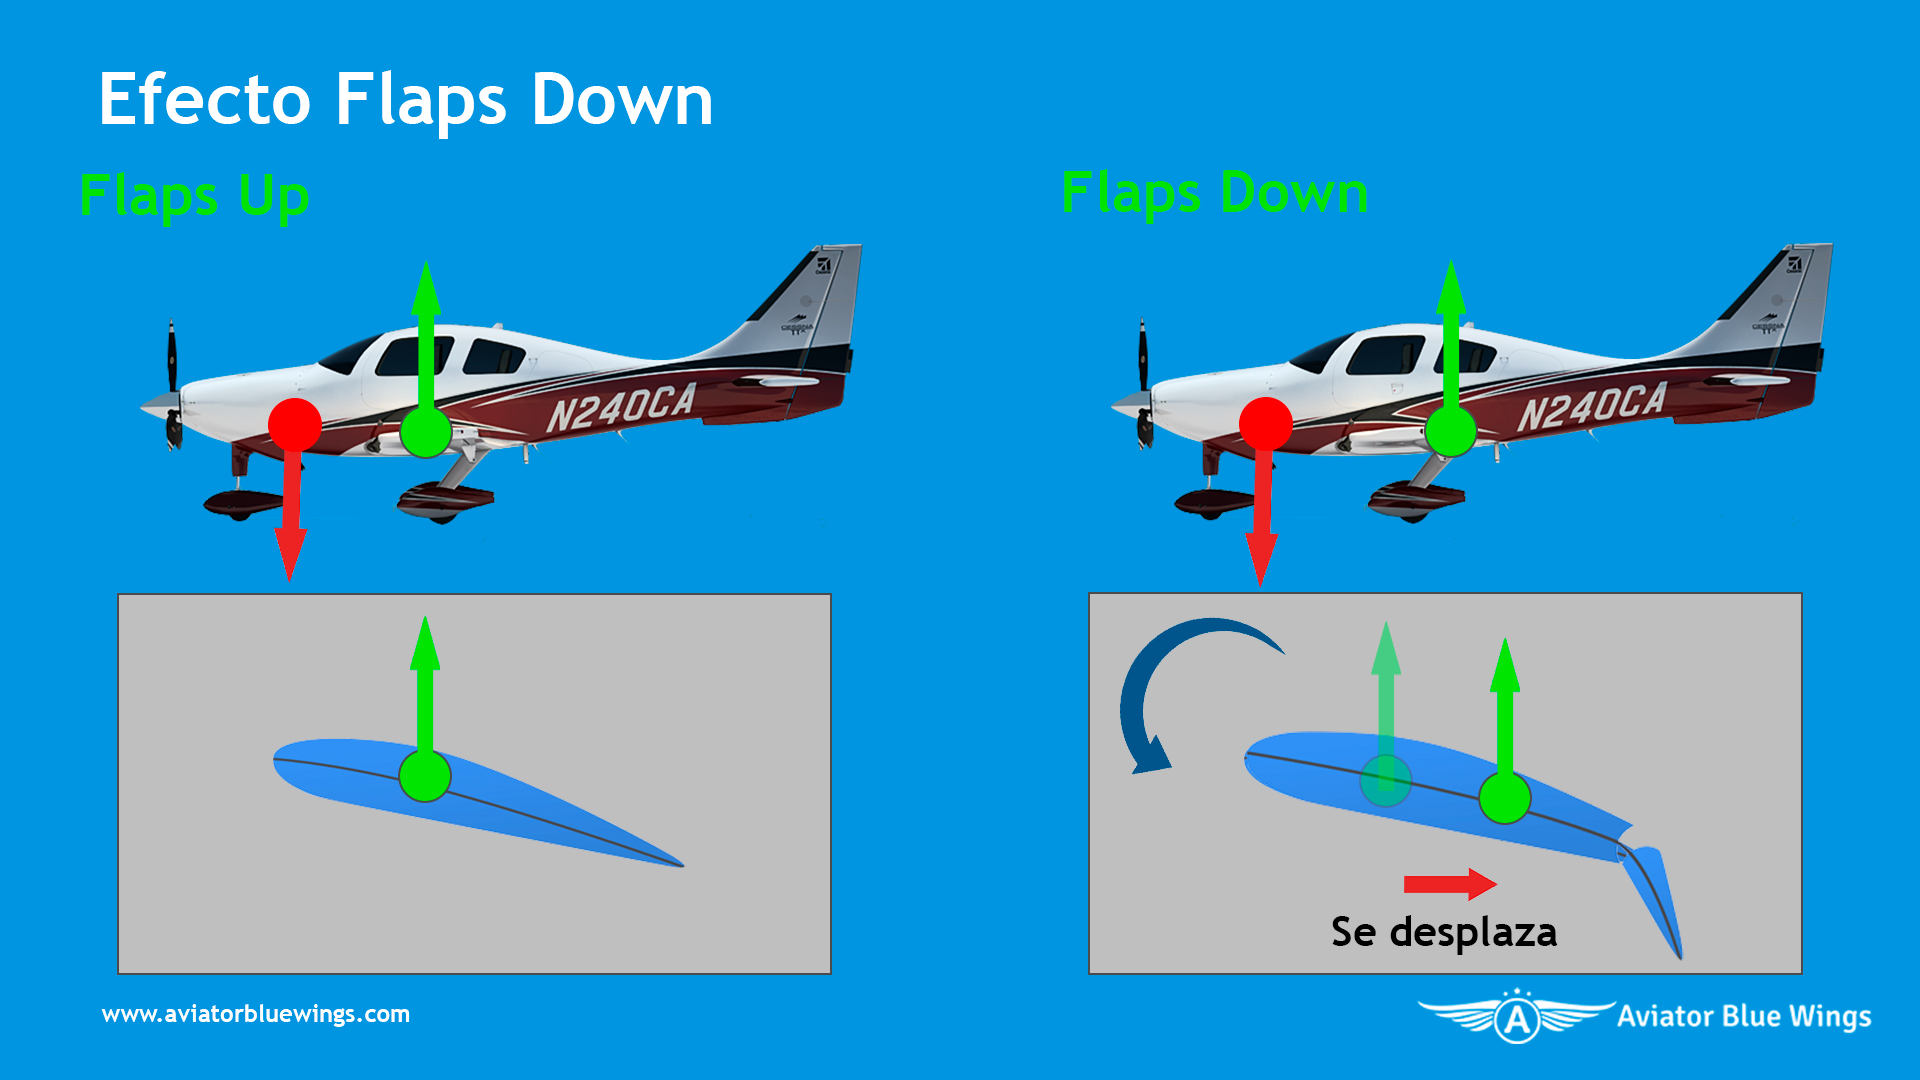 Flaps Down